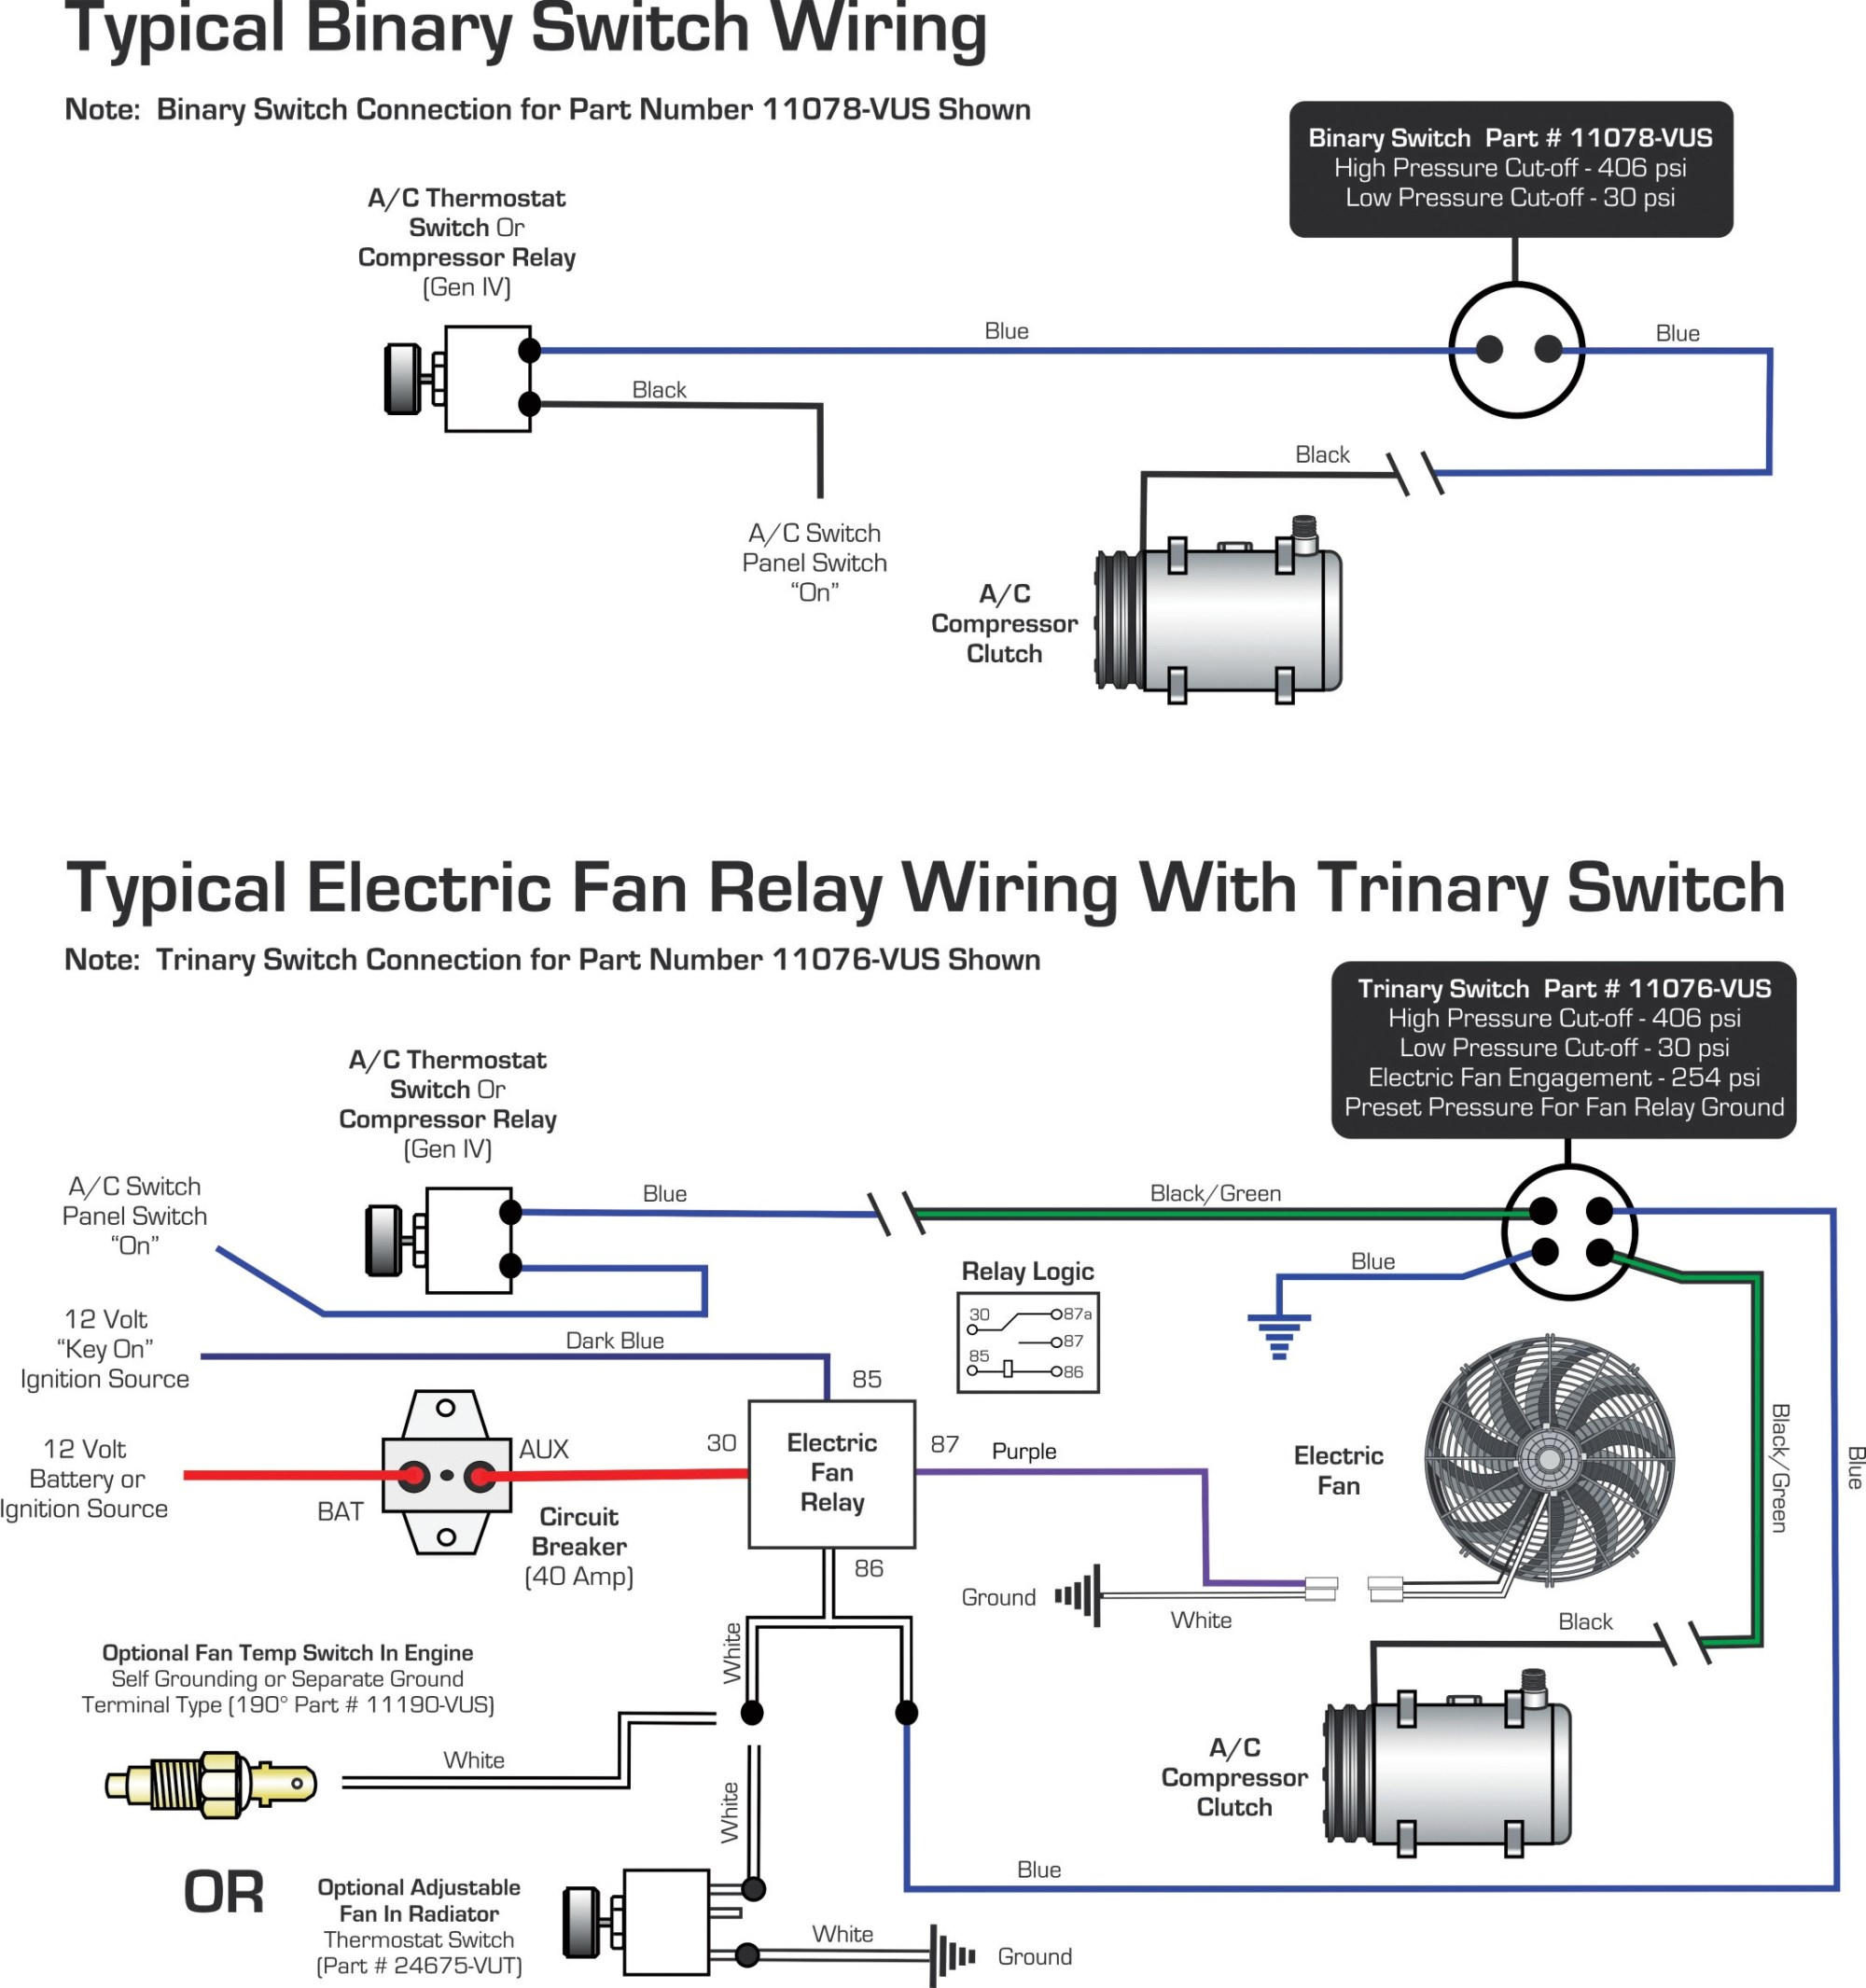 hight resolution of trinary switch wiring diagram for basic wiring diagram img aac trinary switch wiring